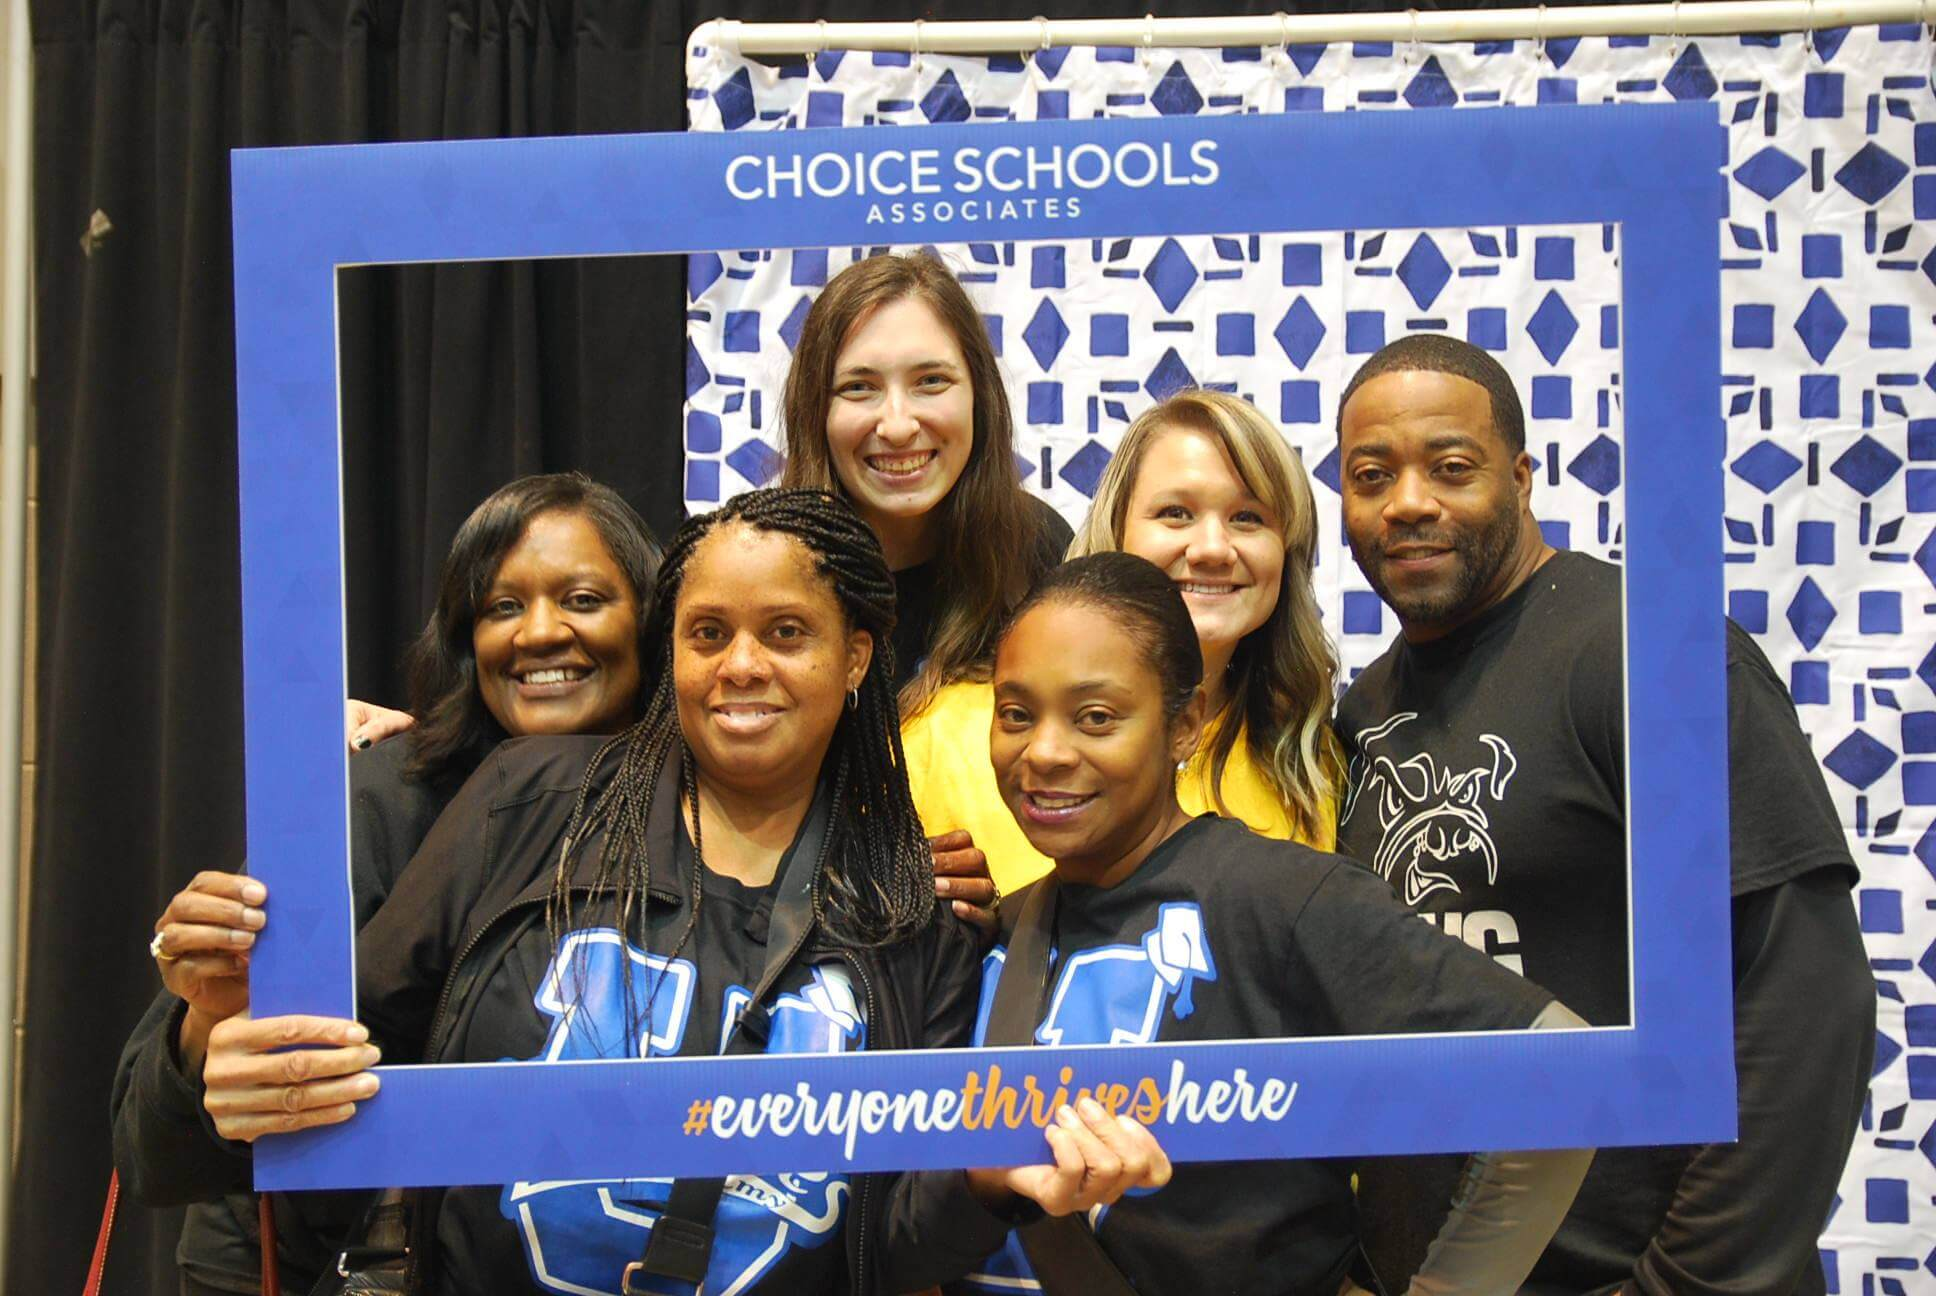 Choice U - Dove staff at photo booth